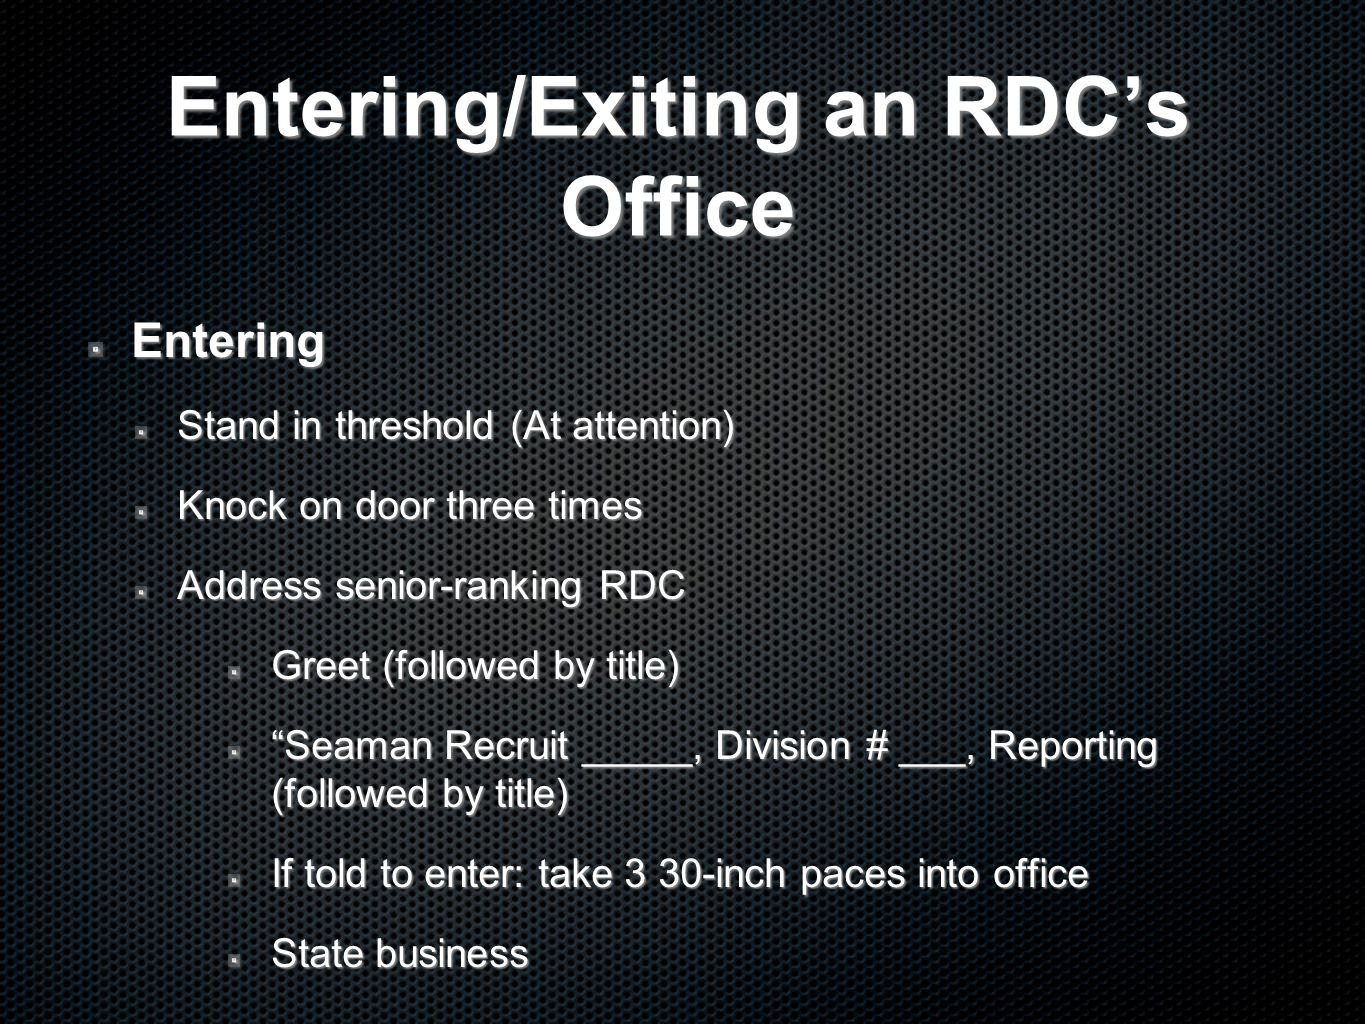 Entering/Exiting an RDC's Office